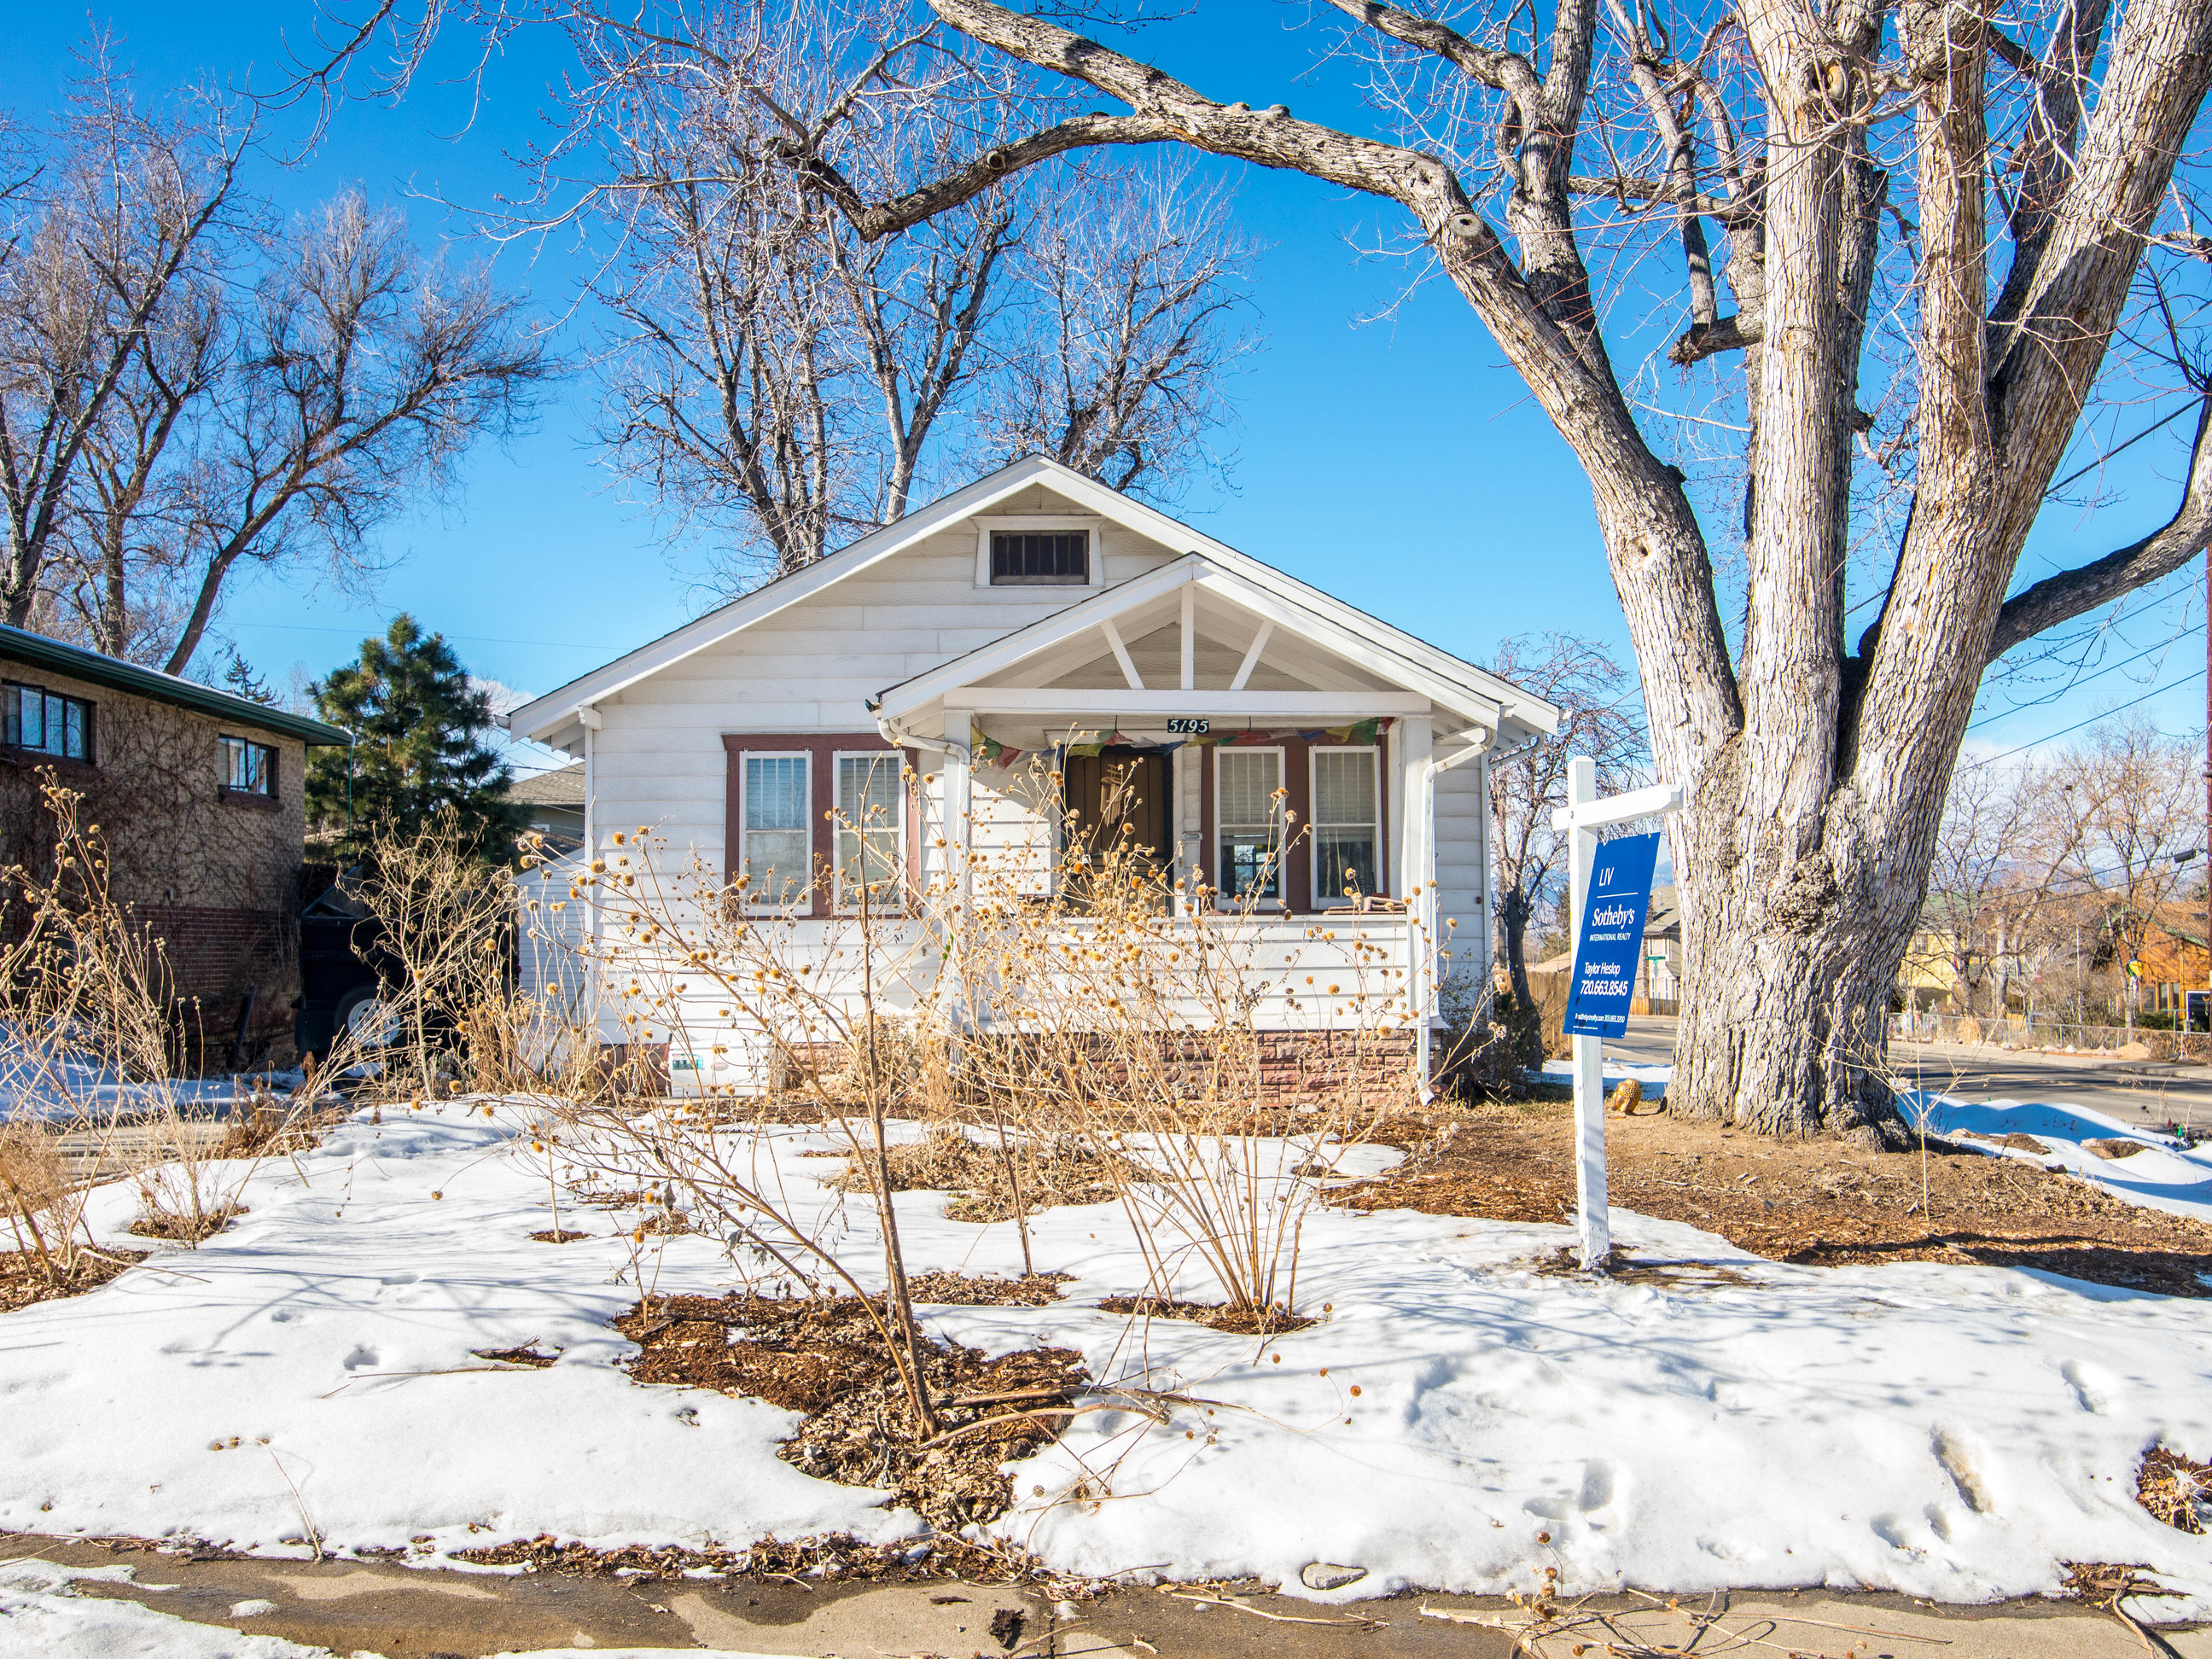 Single Family Home for Sale at Adorable bungalow in the charming Regis neighborhood 5195 Raleigh Street Regis, Denver, Colorado 80212 United States